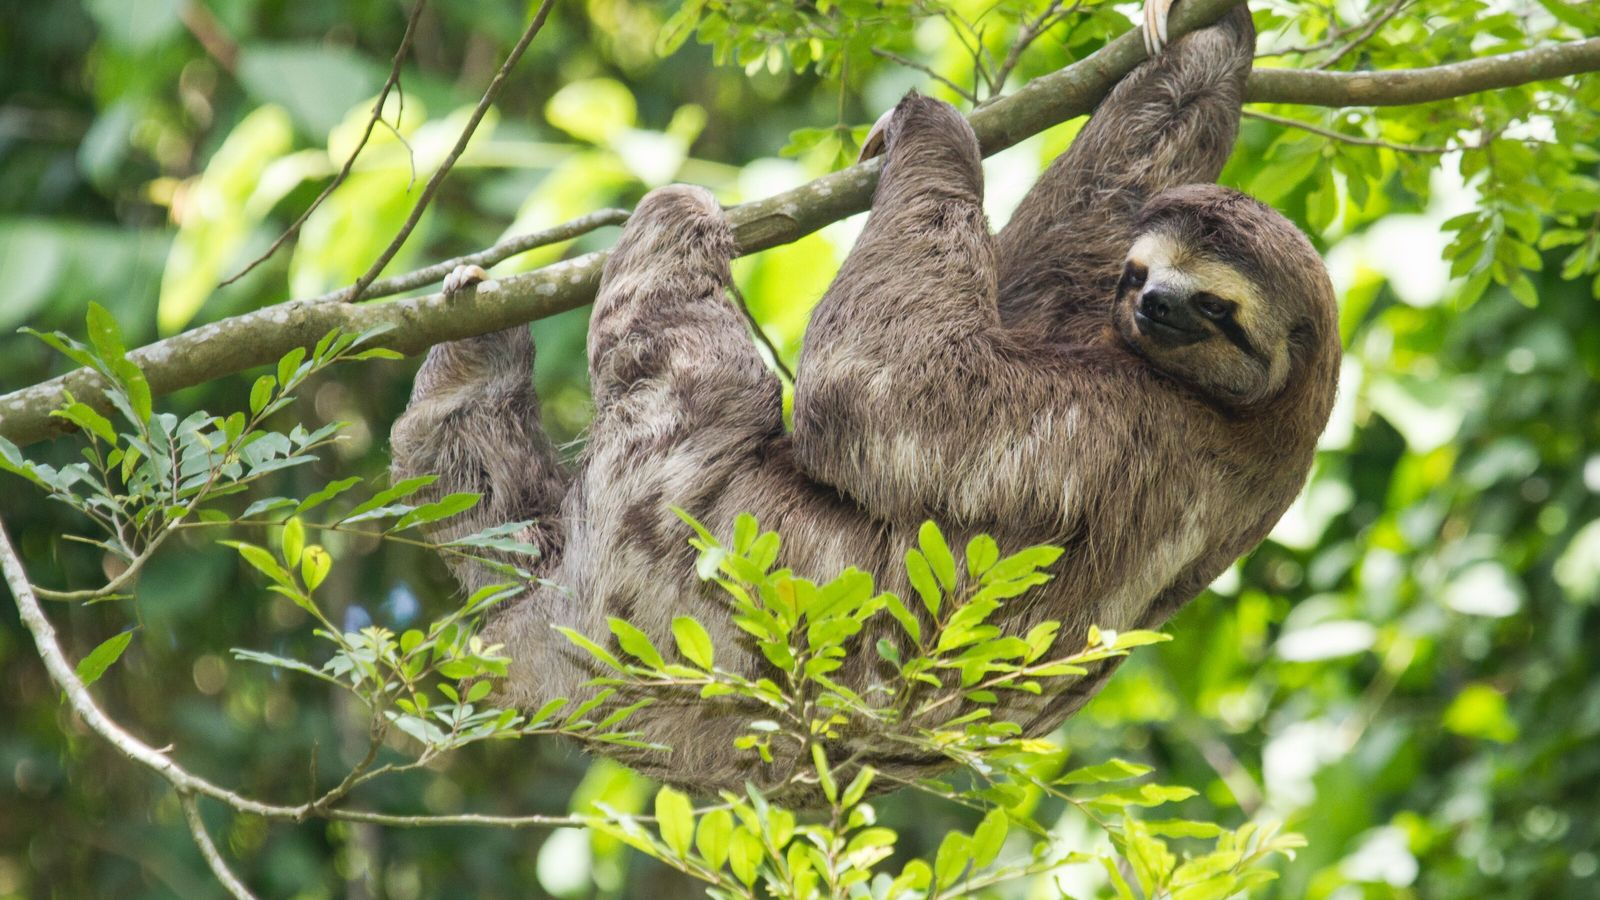 World Animal Protection estimates that thousands of sloths are snatched from the wild every year to service the tourism industry.